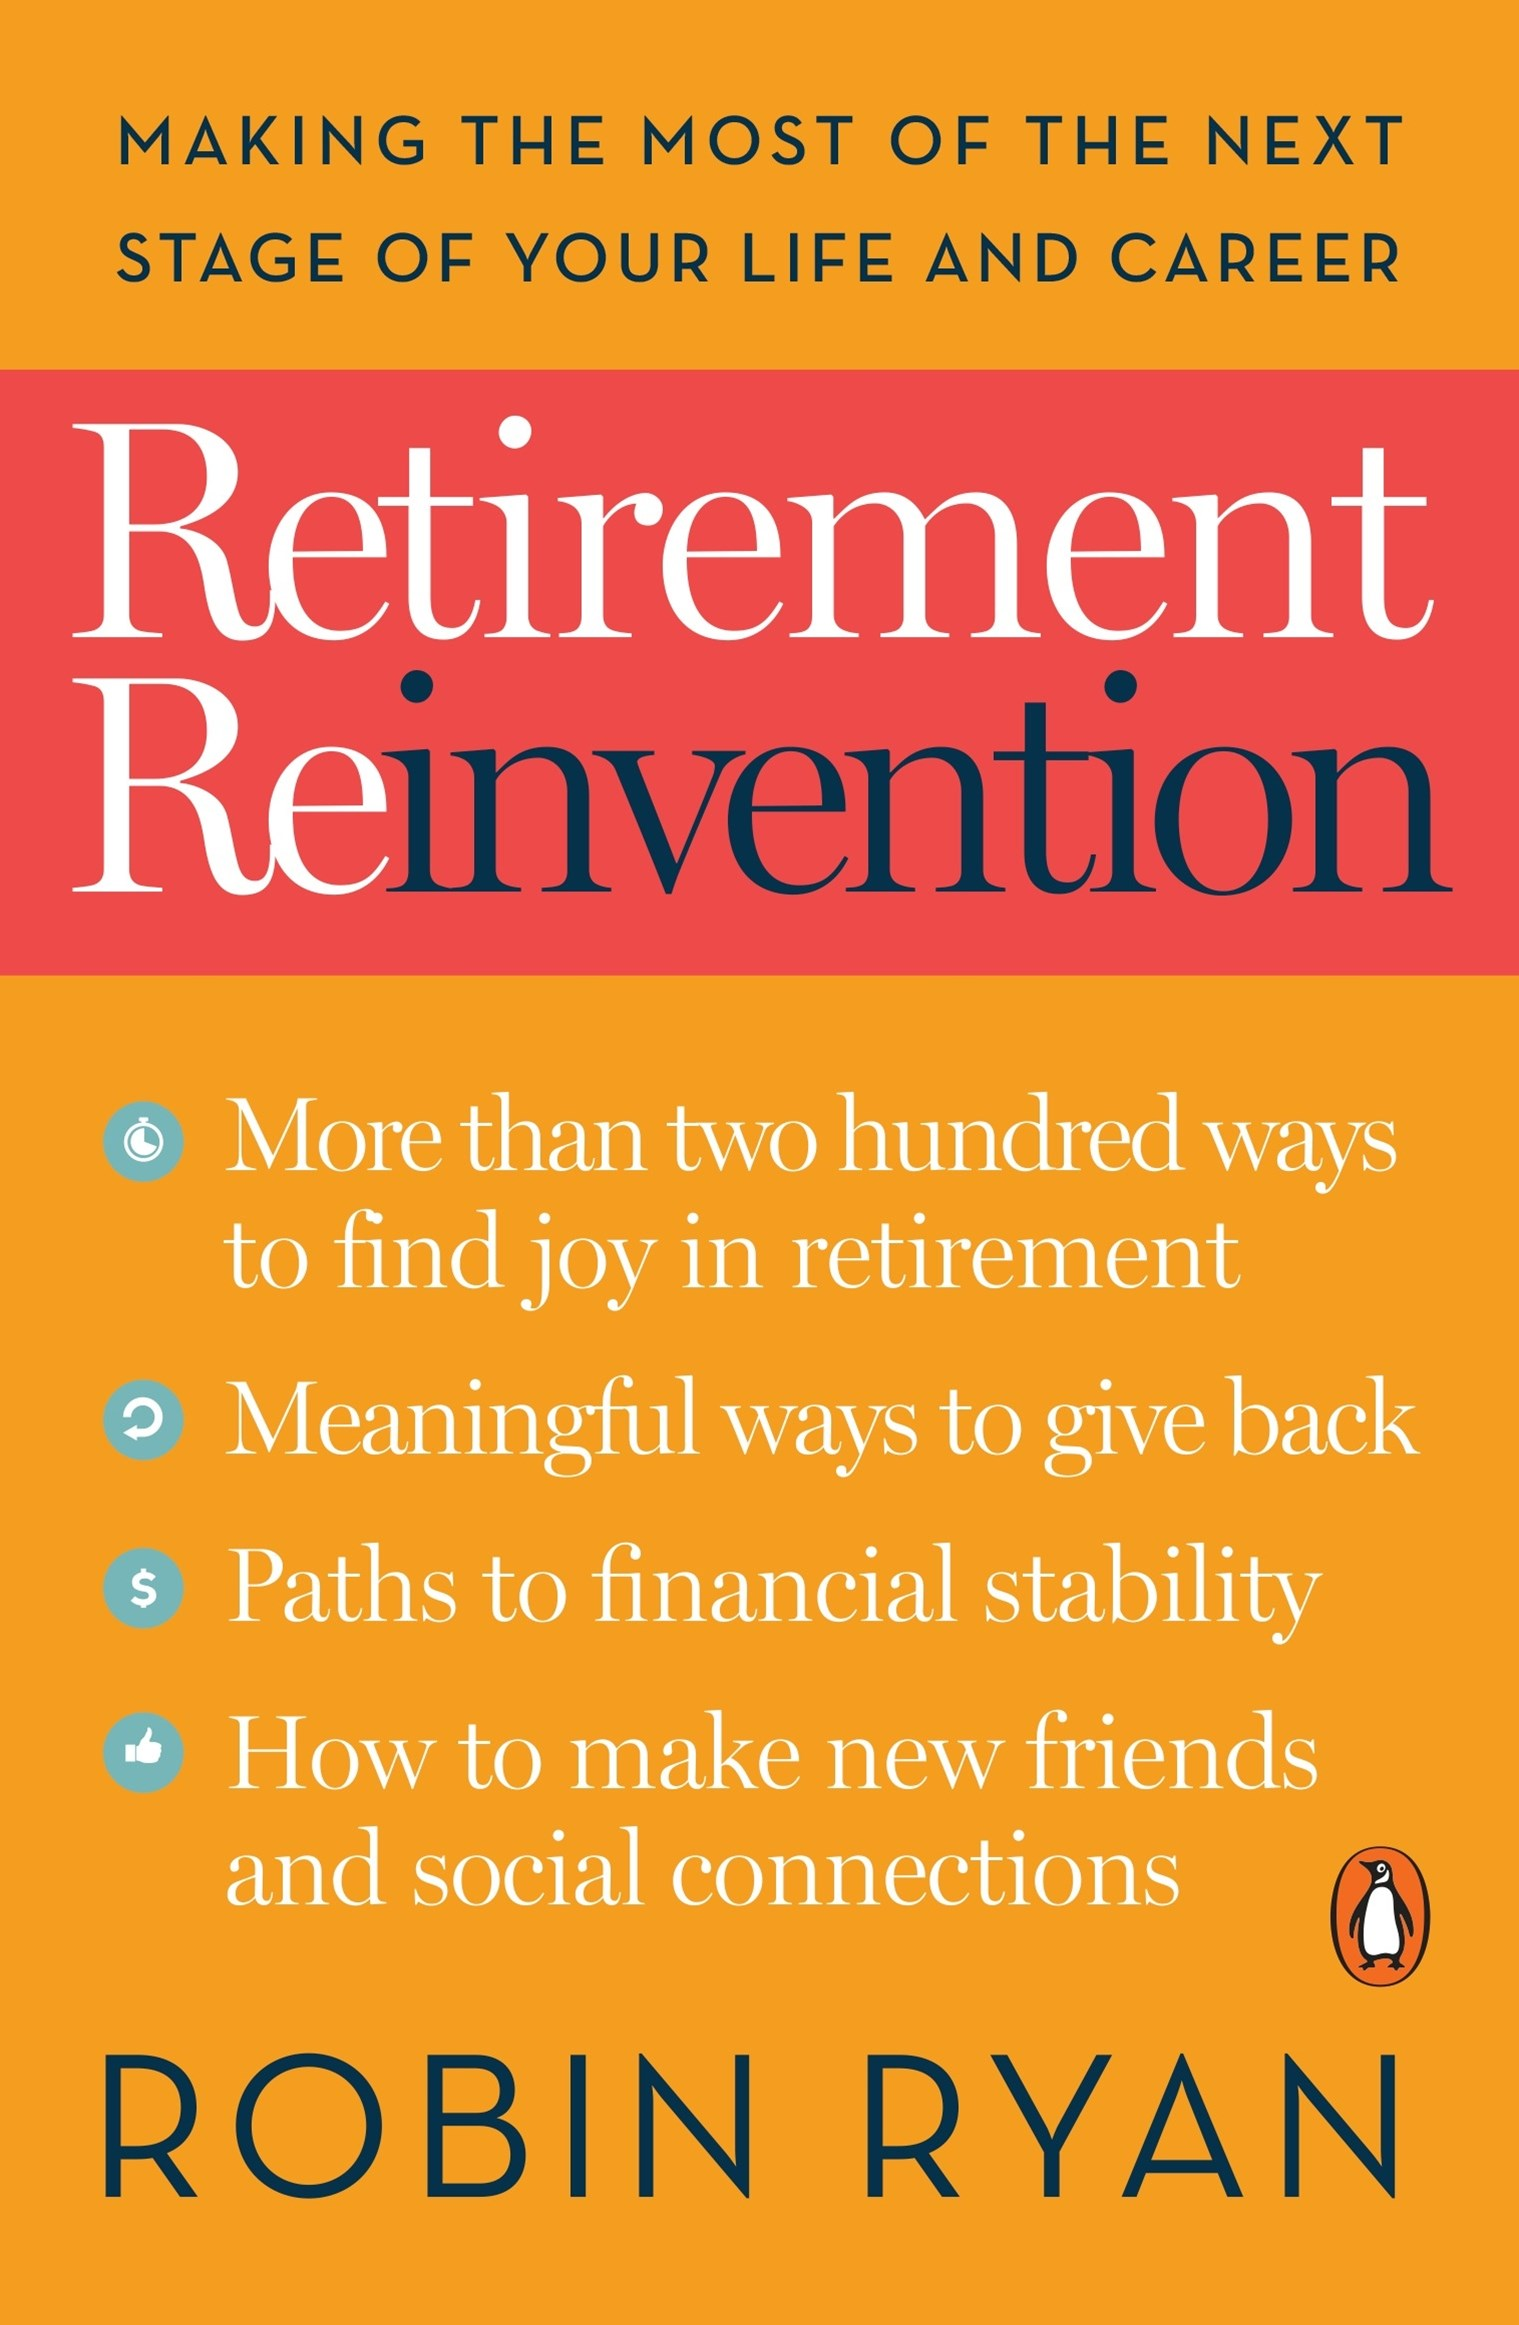 Retirement Reinvention: Making the Most of the Next Stage of Your Life and Career